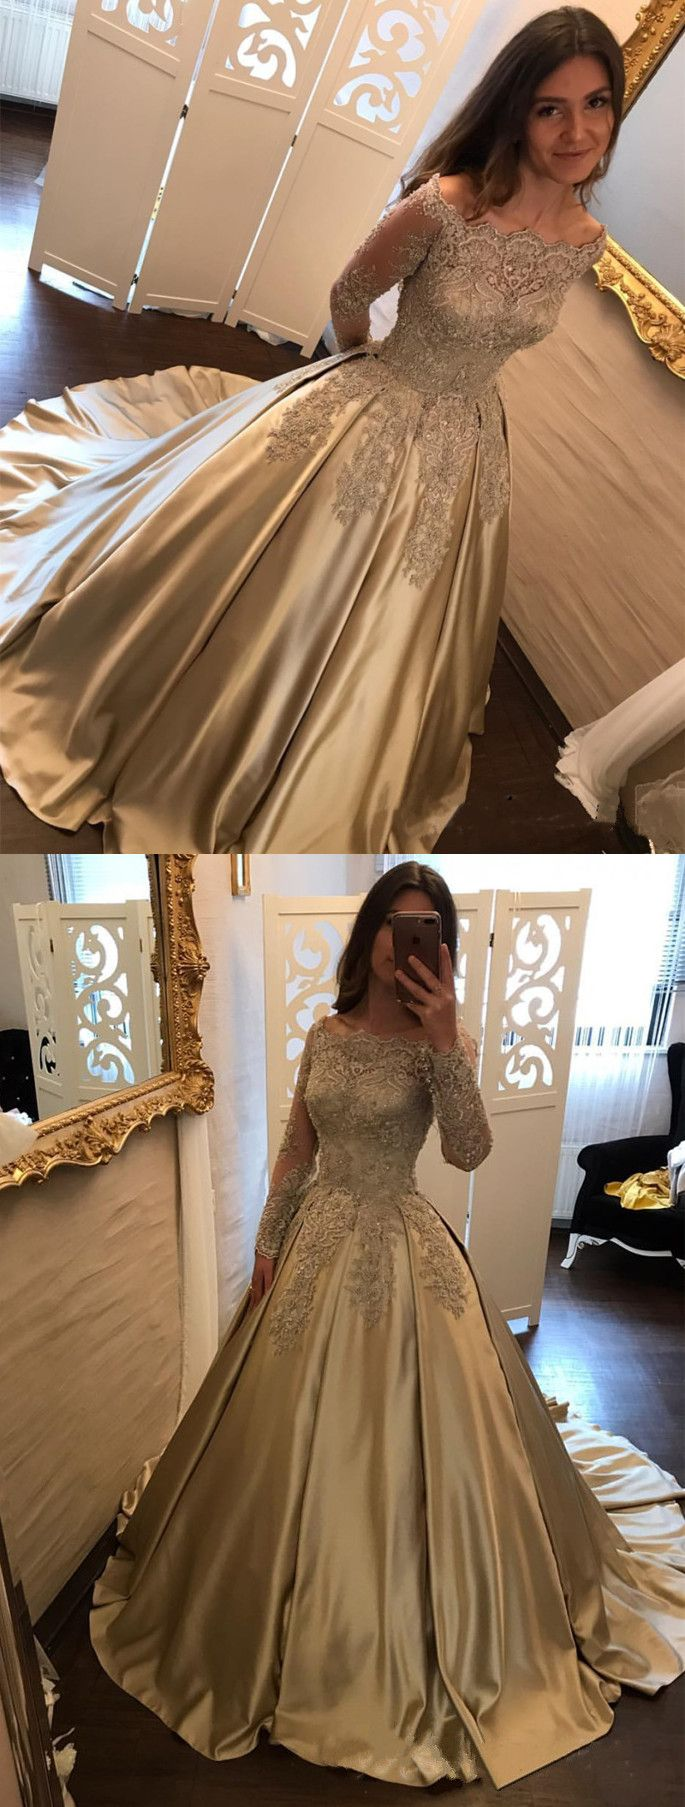 gold satin ball gowns,long sleeves prom dress,gold wedding dress lace long sleeves